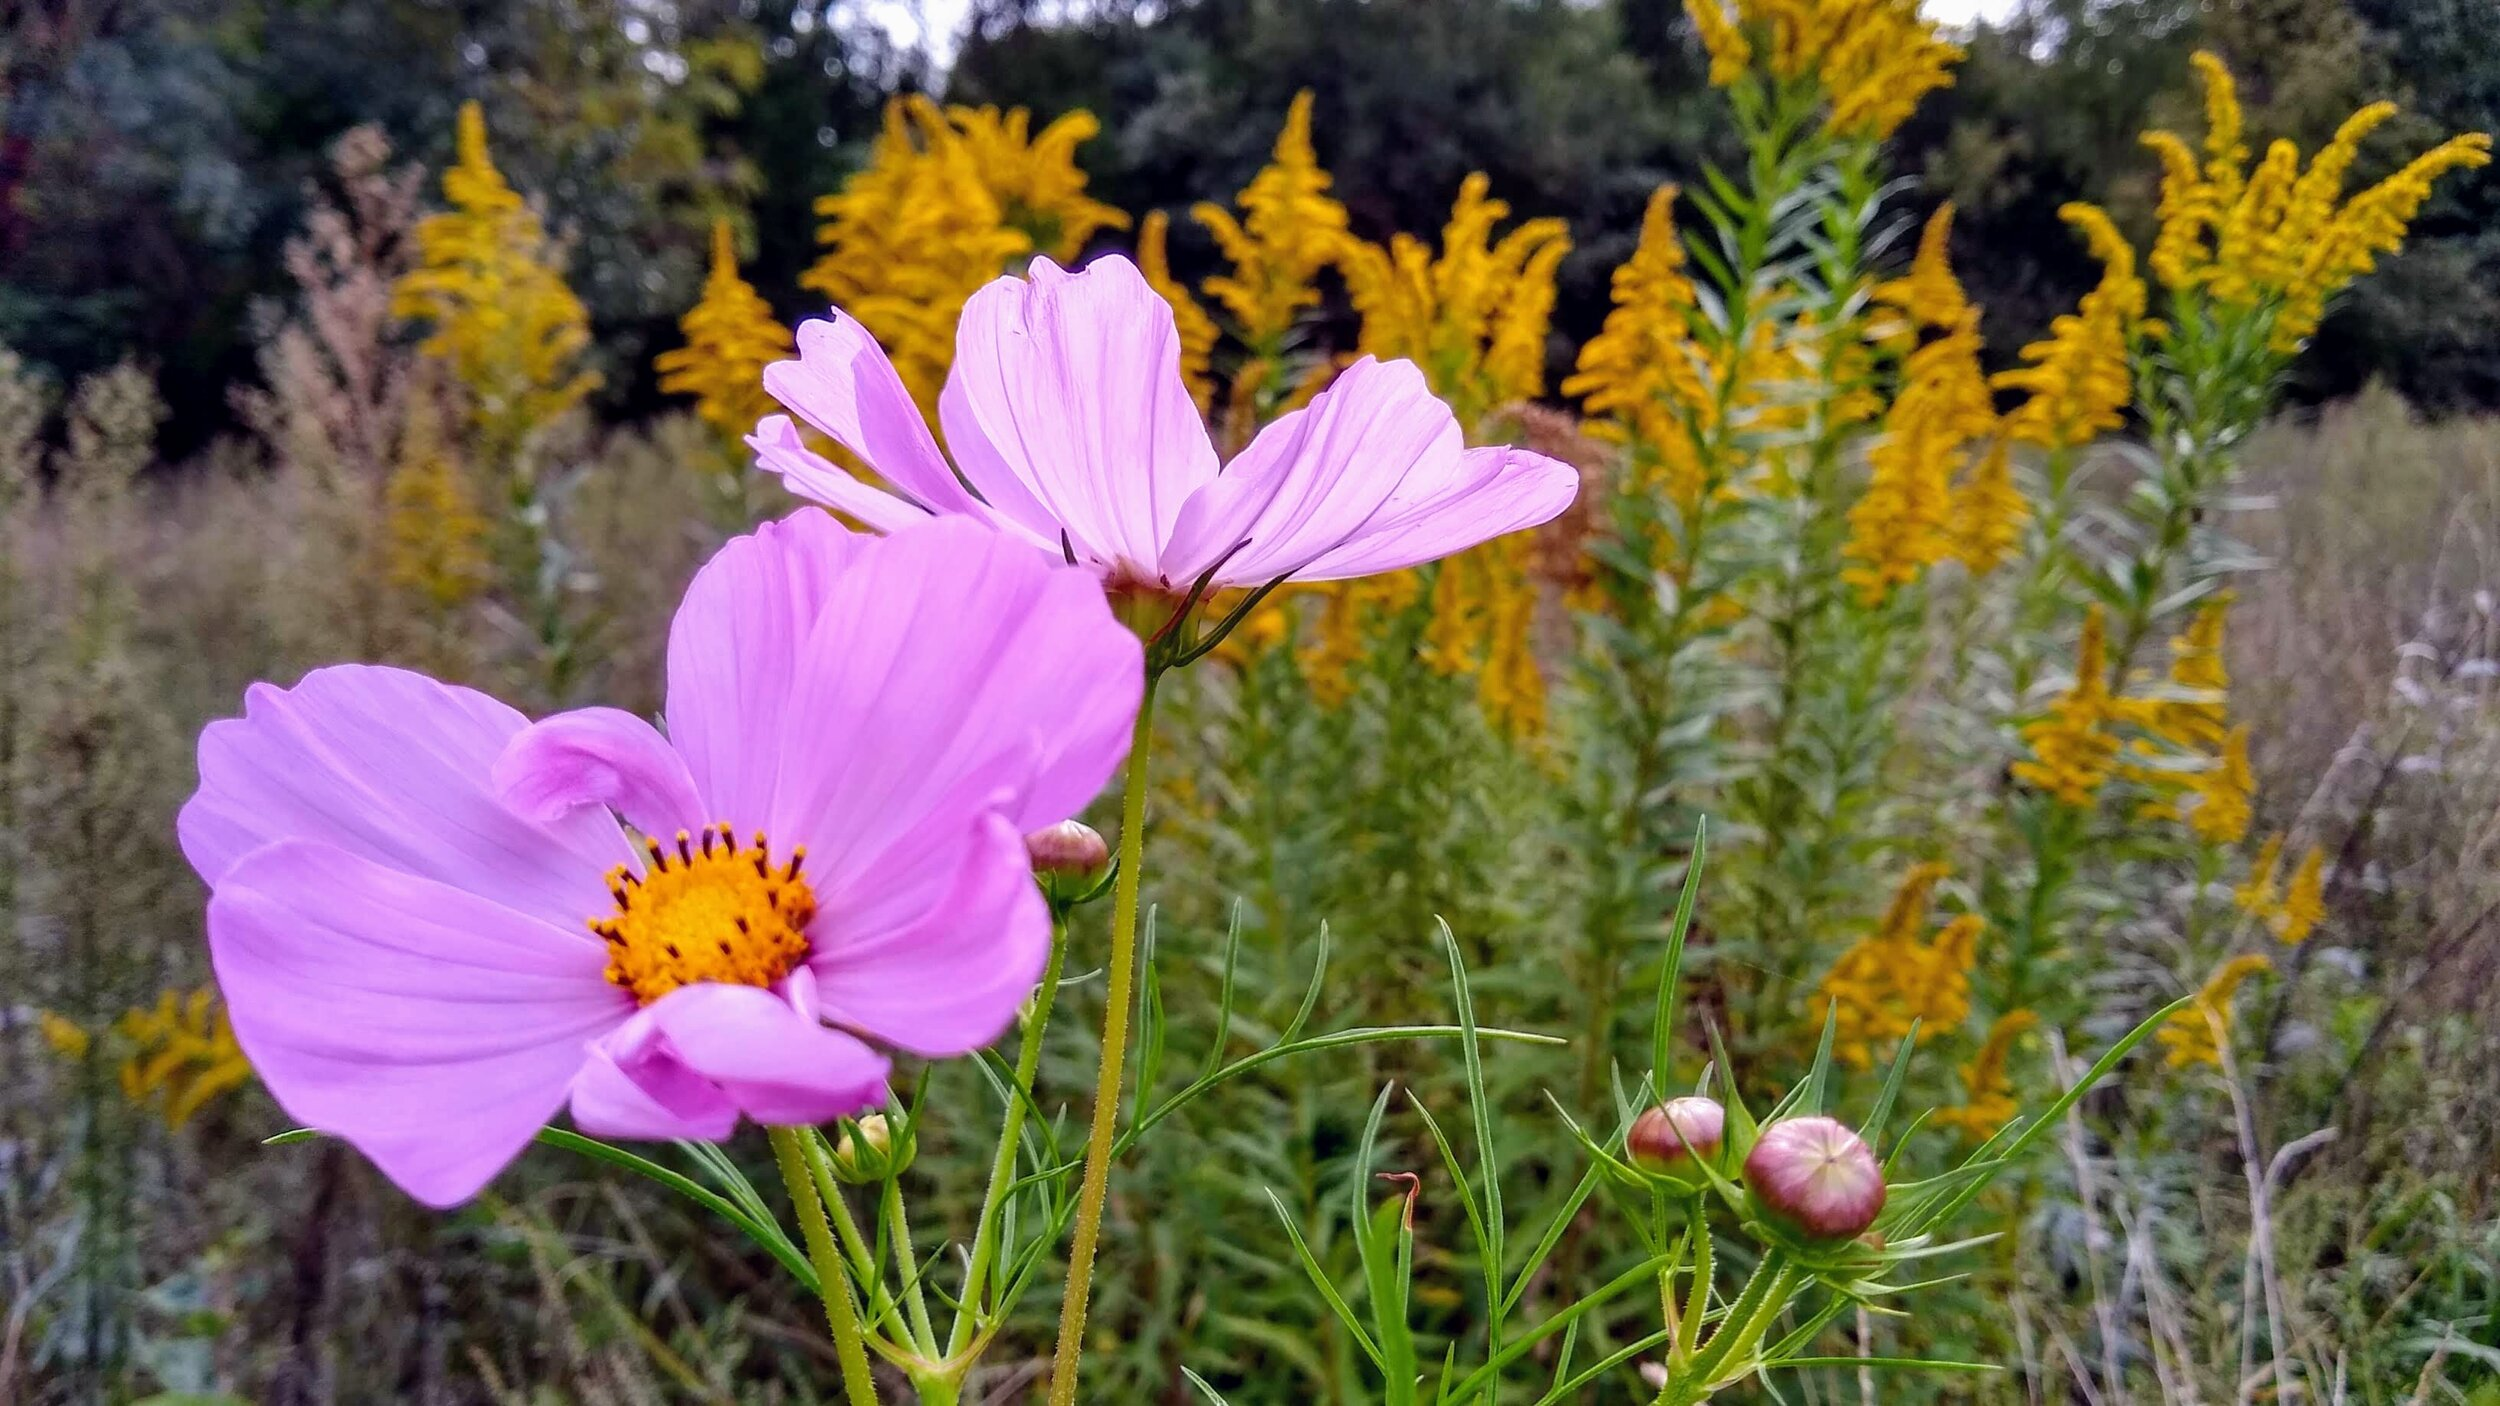 More October flowers, including cosmos sensation and nearly-spent goldenrod